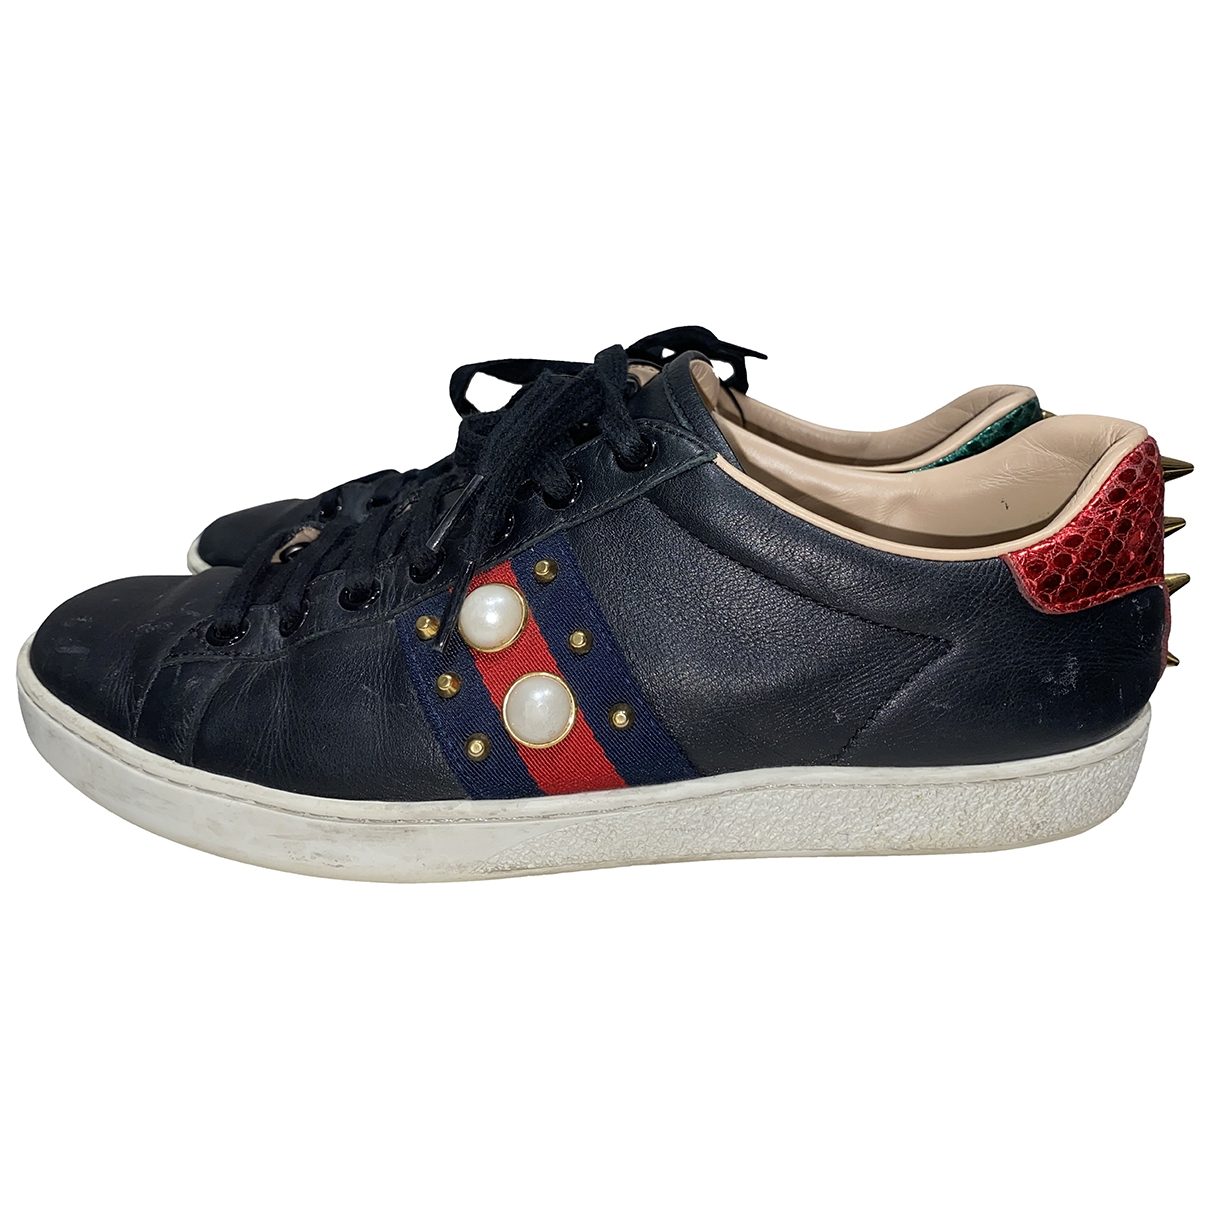 Gucci Ace Black Leather Trainers for Women 38 EU